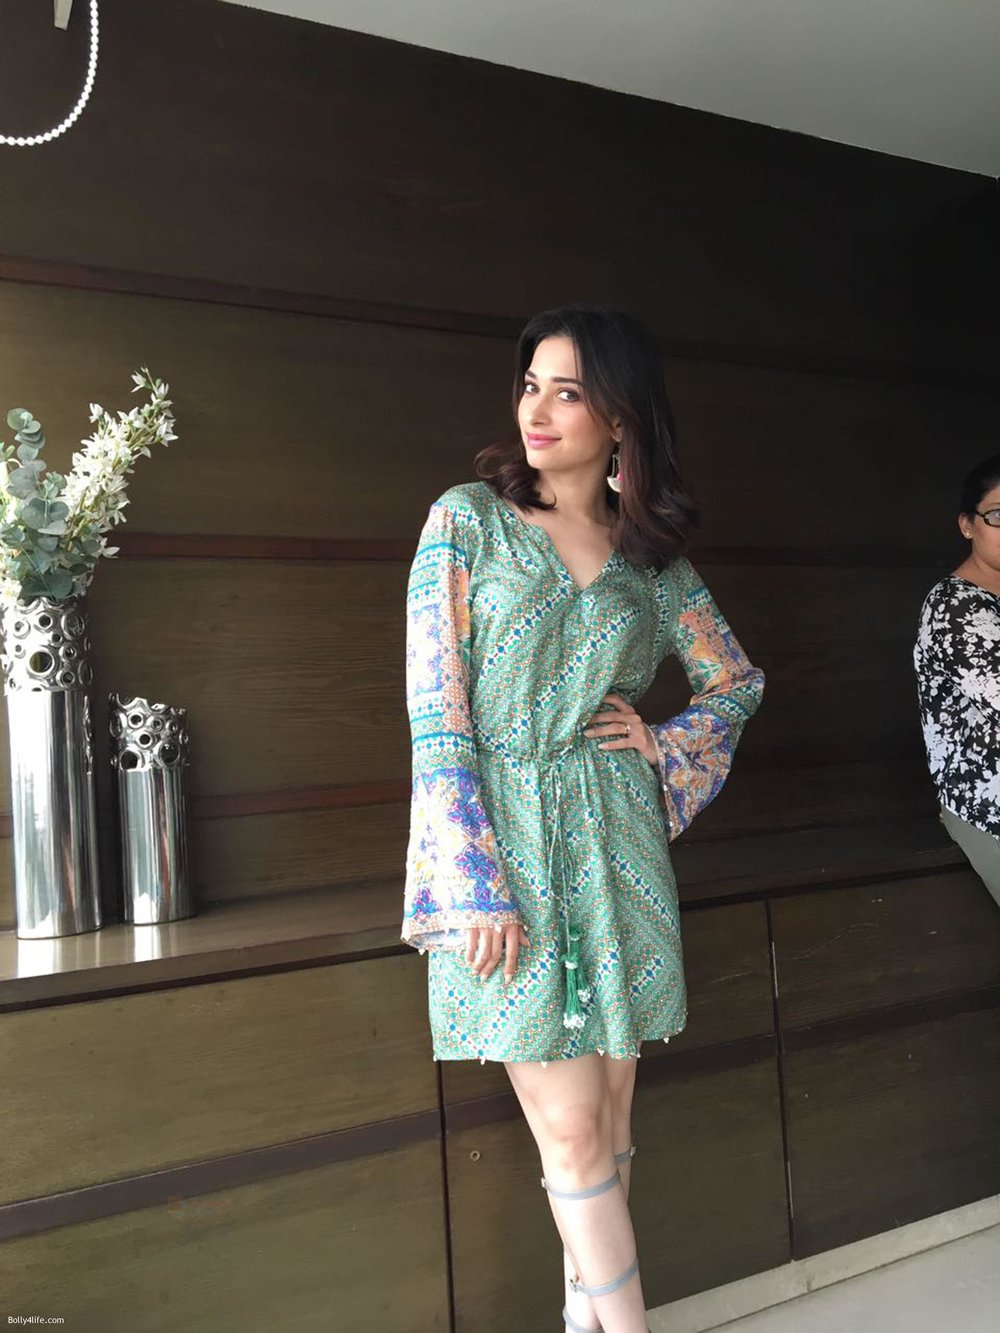 Tamannah-Bhatia-looking-ravishing-during-the-promotions-of-of-her-upcoming-film-Tutak-Tutak-Tutiya-6.jpg